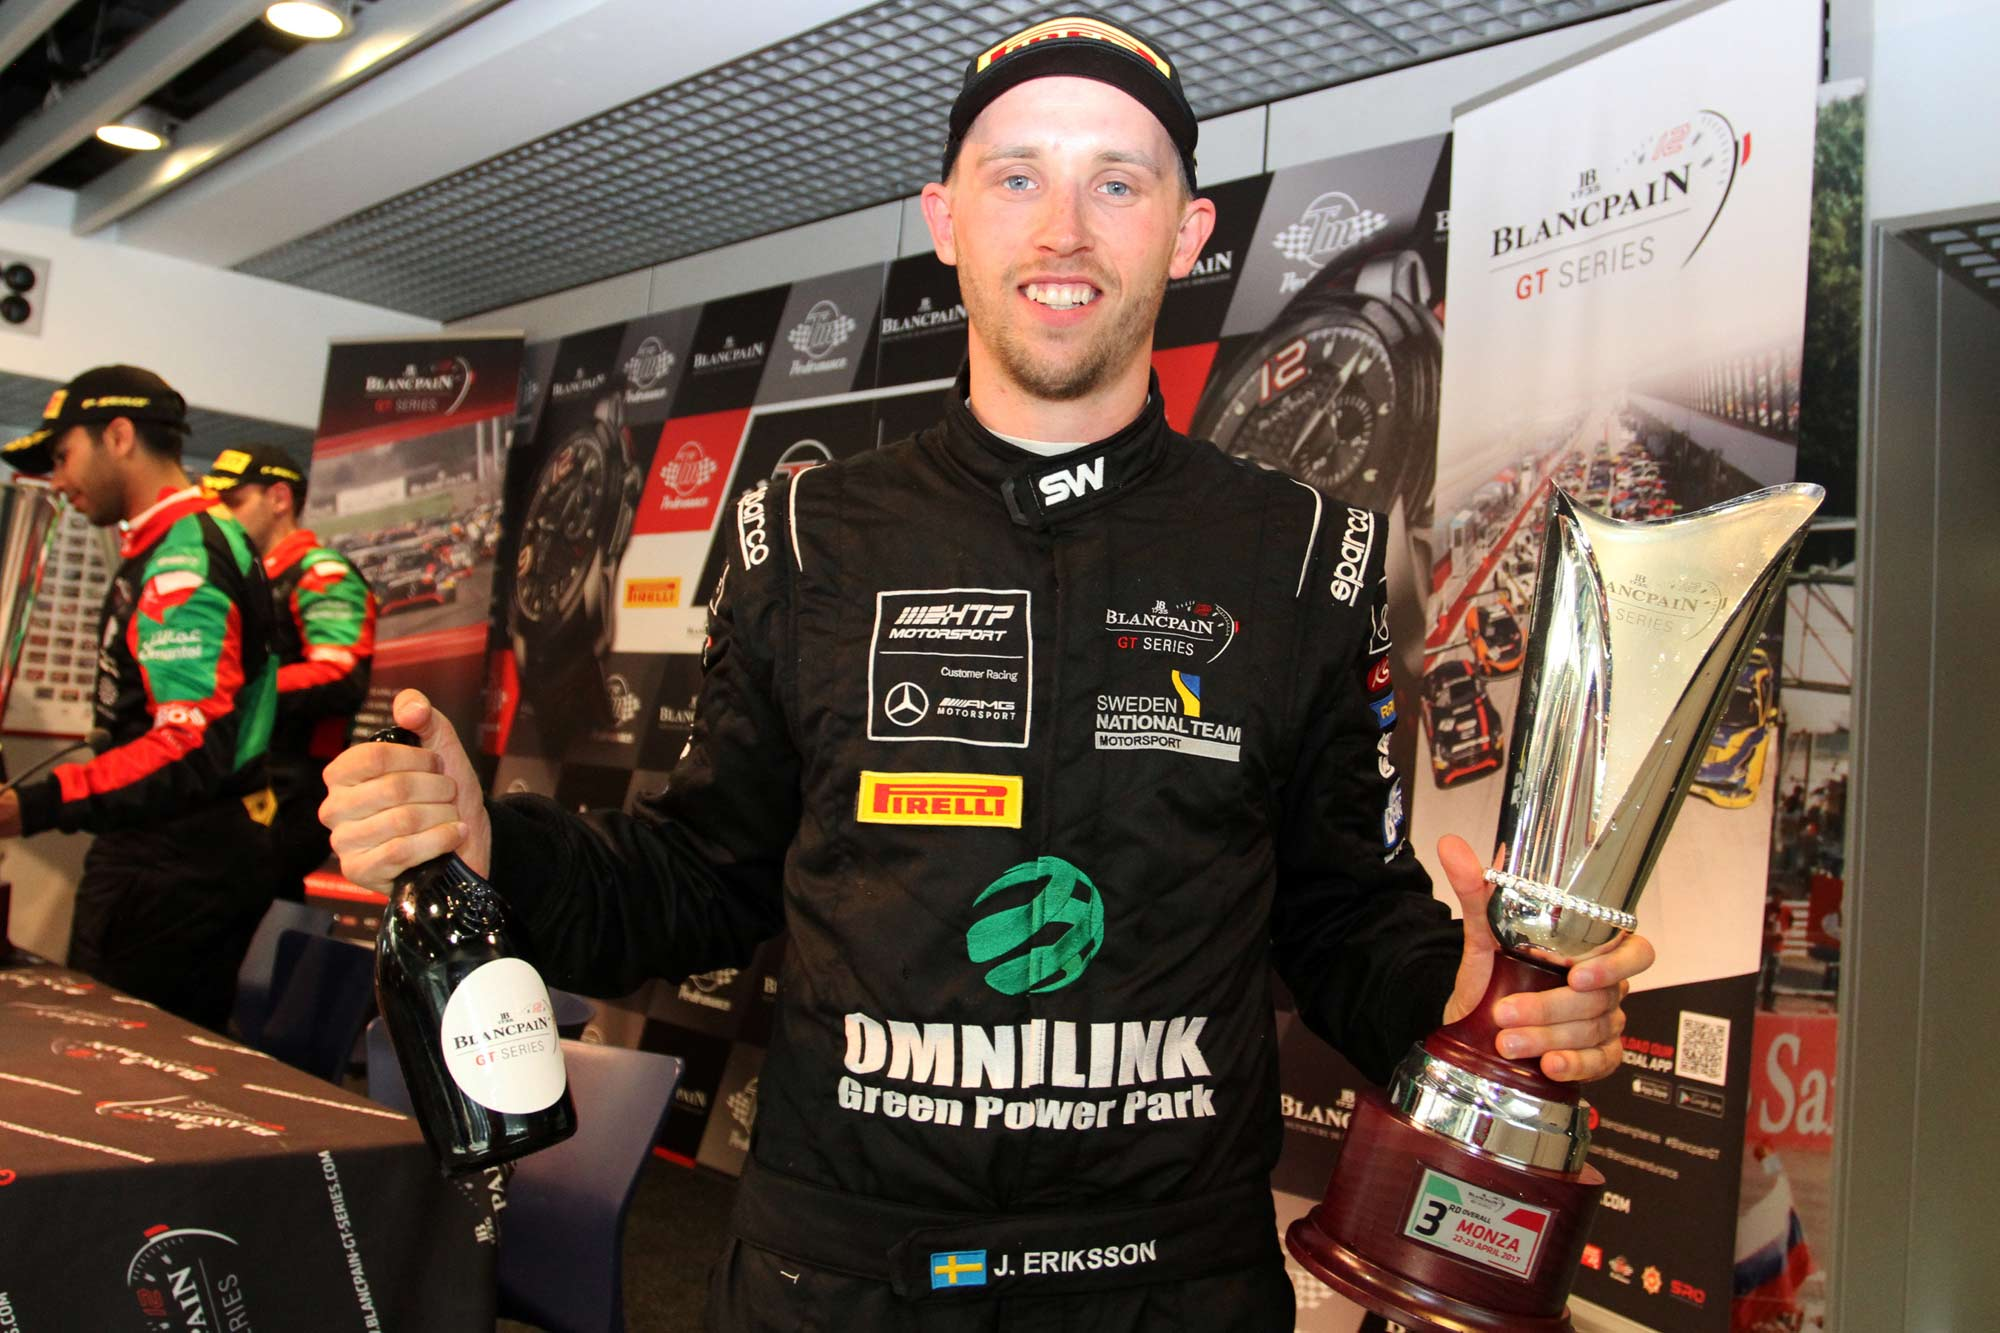 Jimmy Eriksson takes second consecutive podium